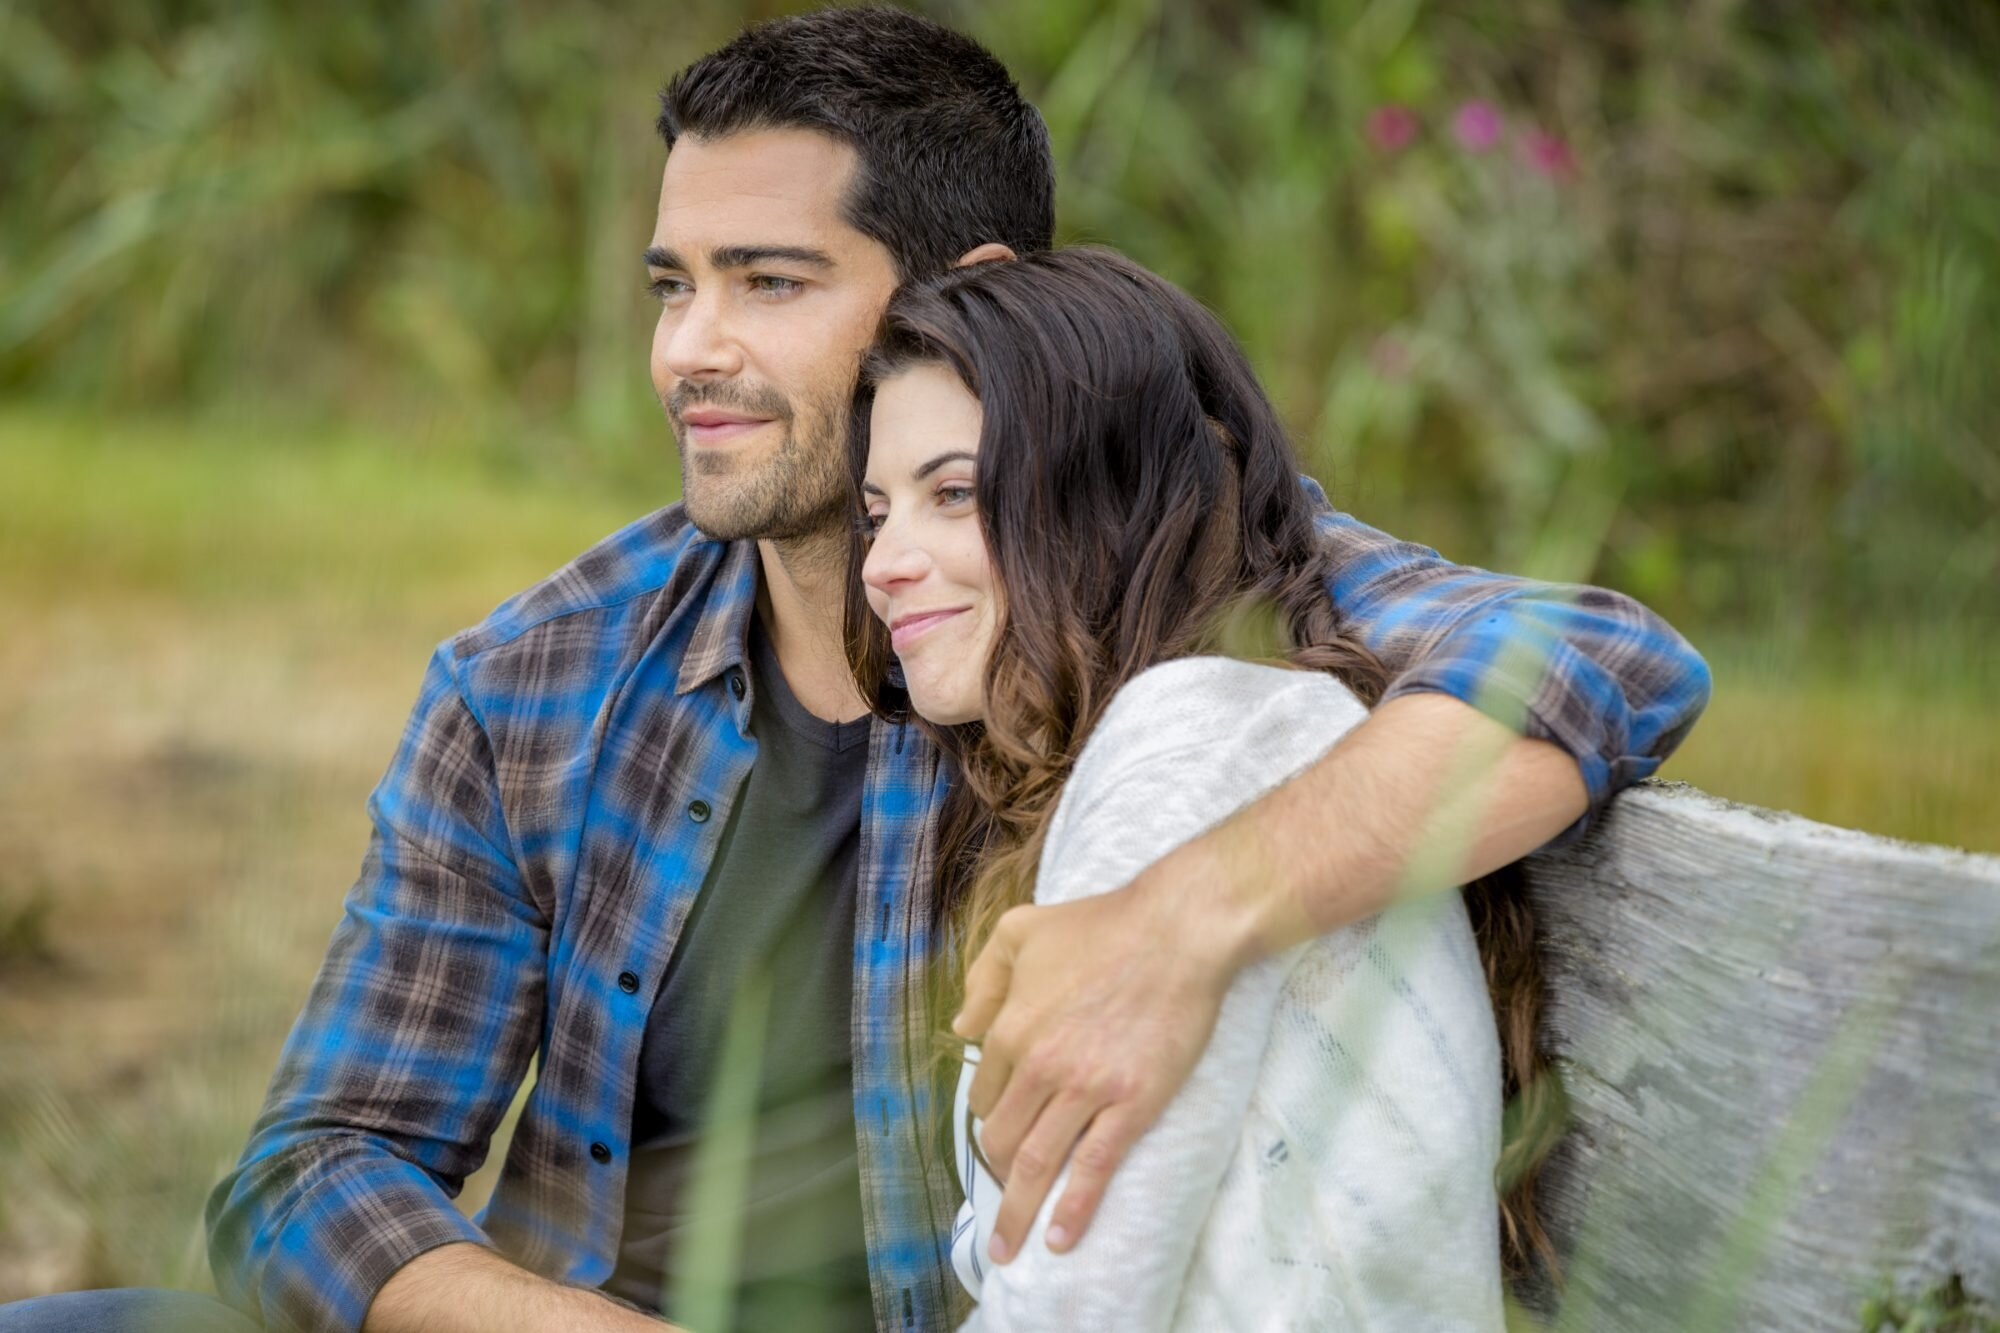 """Chesapeake Shores"""" Season 1 Airing on Amazon Prime for a Limited Time 